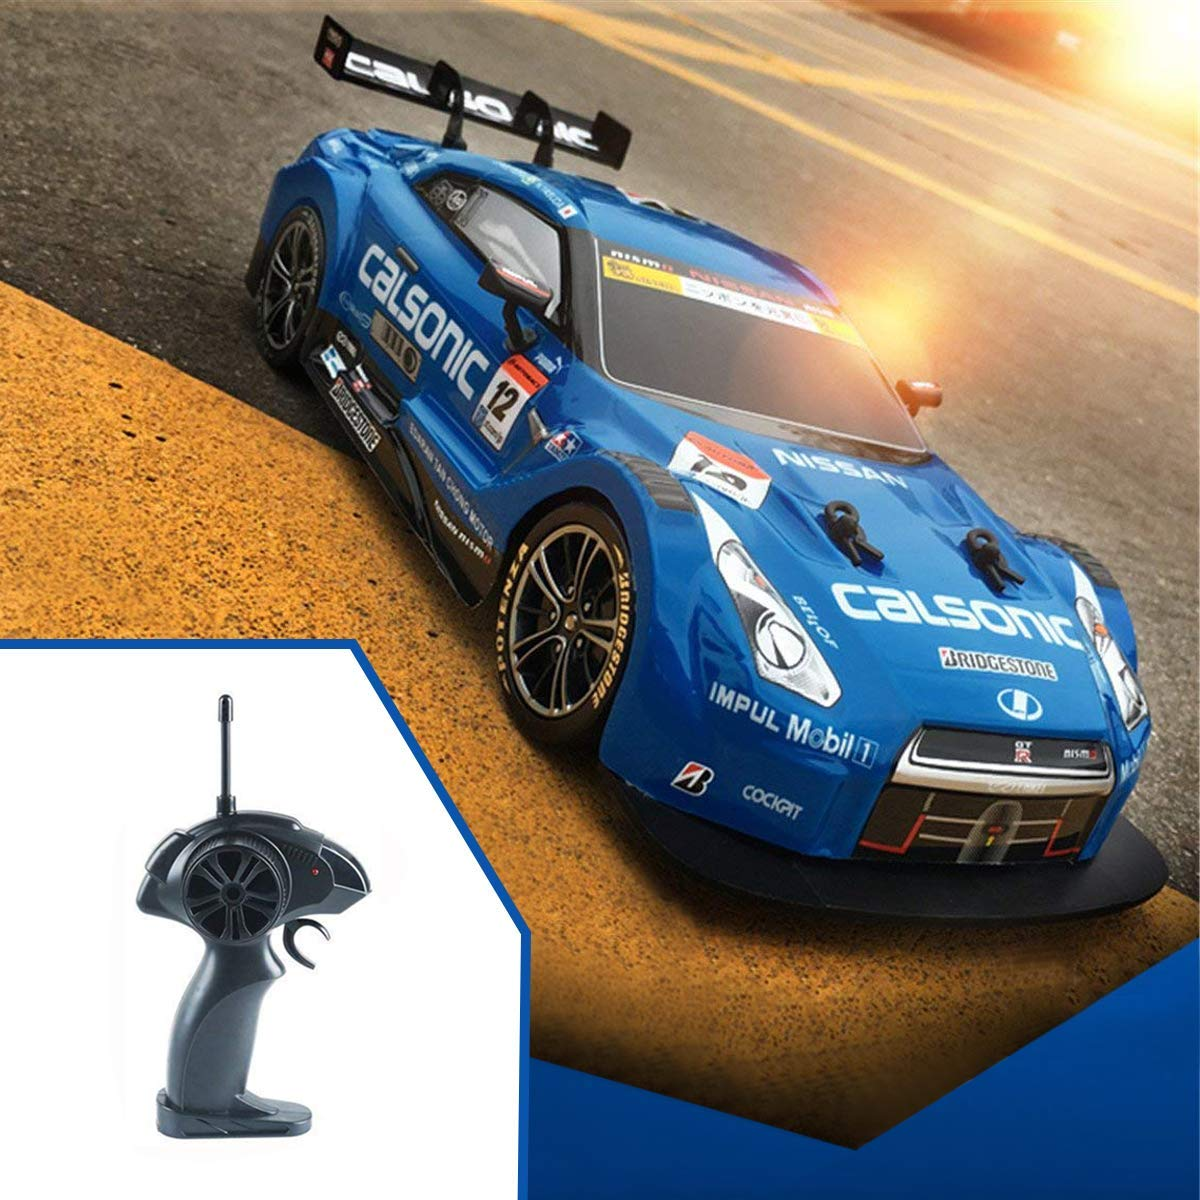 Hobby-Ace Super GT RC Sport Racing Drift Car, Electric Remote Control Car for Adults Kids Gifts, 1/16 Scale 4WD RTR Module Vehicles with 6 Battery and Drift Tires (Blue)